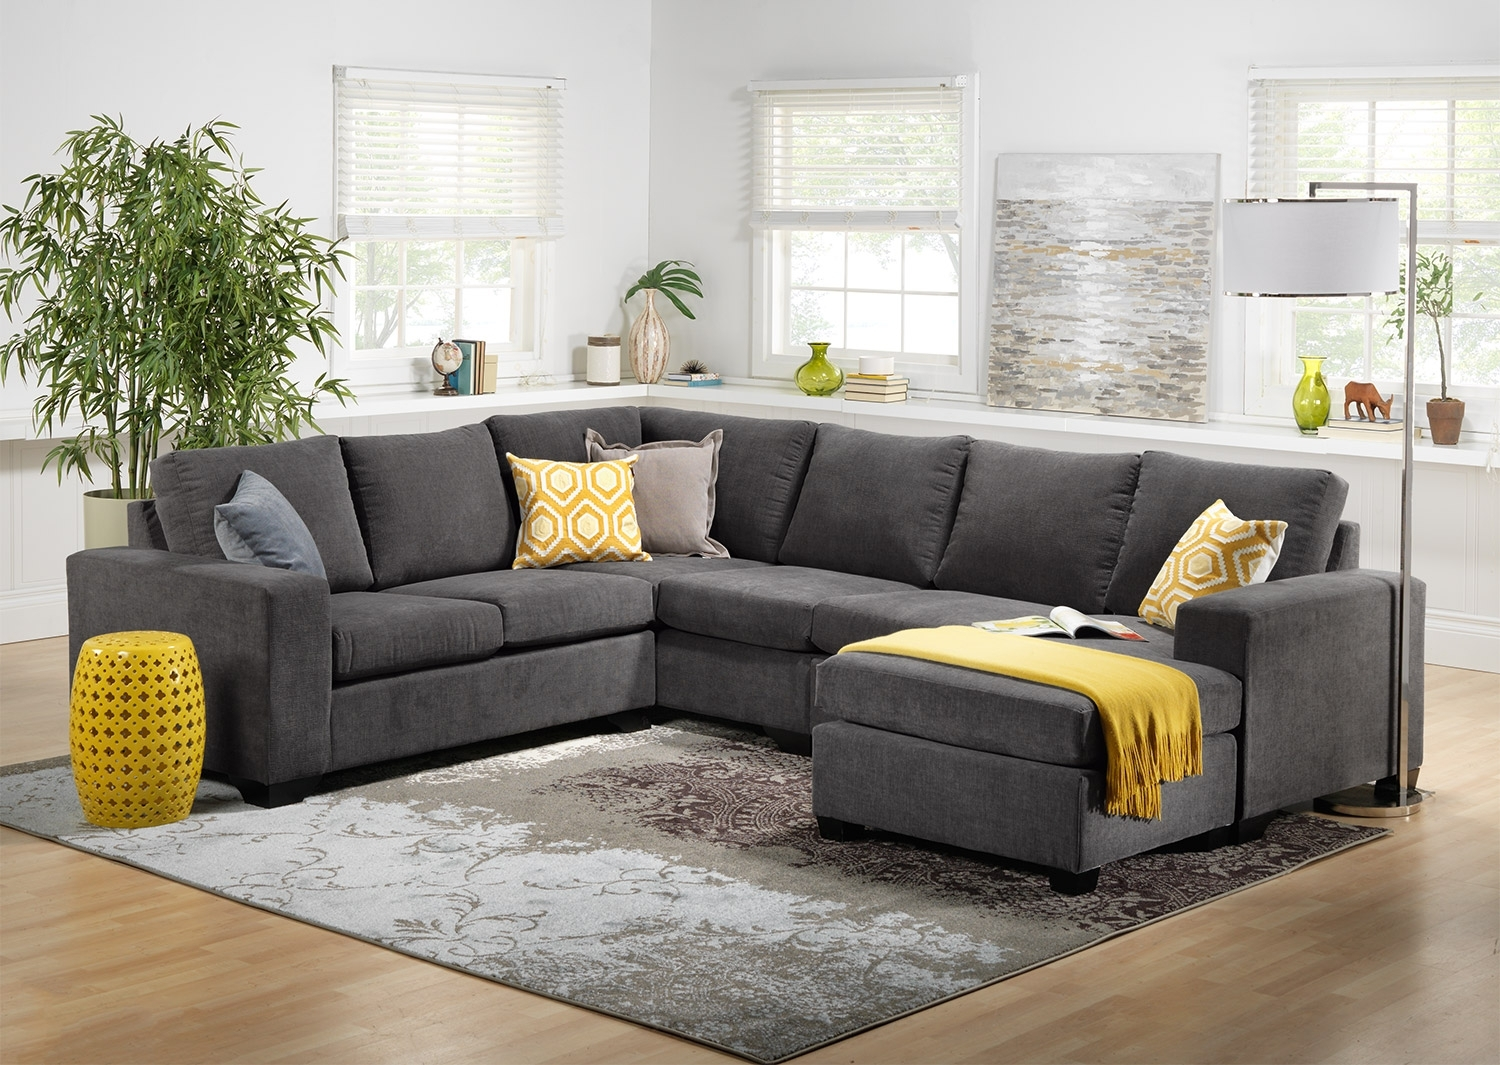 Furniture For Sale Montreal 10 Collection Of Ontario Canada Sectional Sofas Sofa Ideas